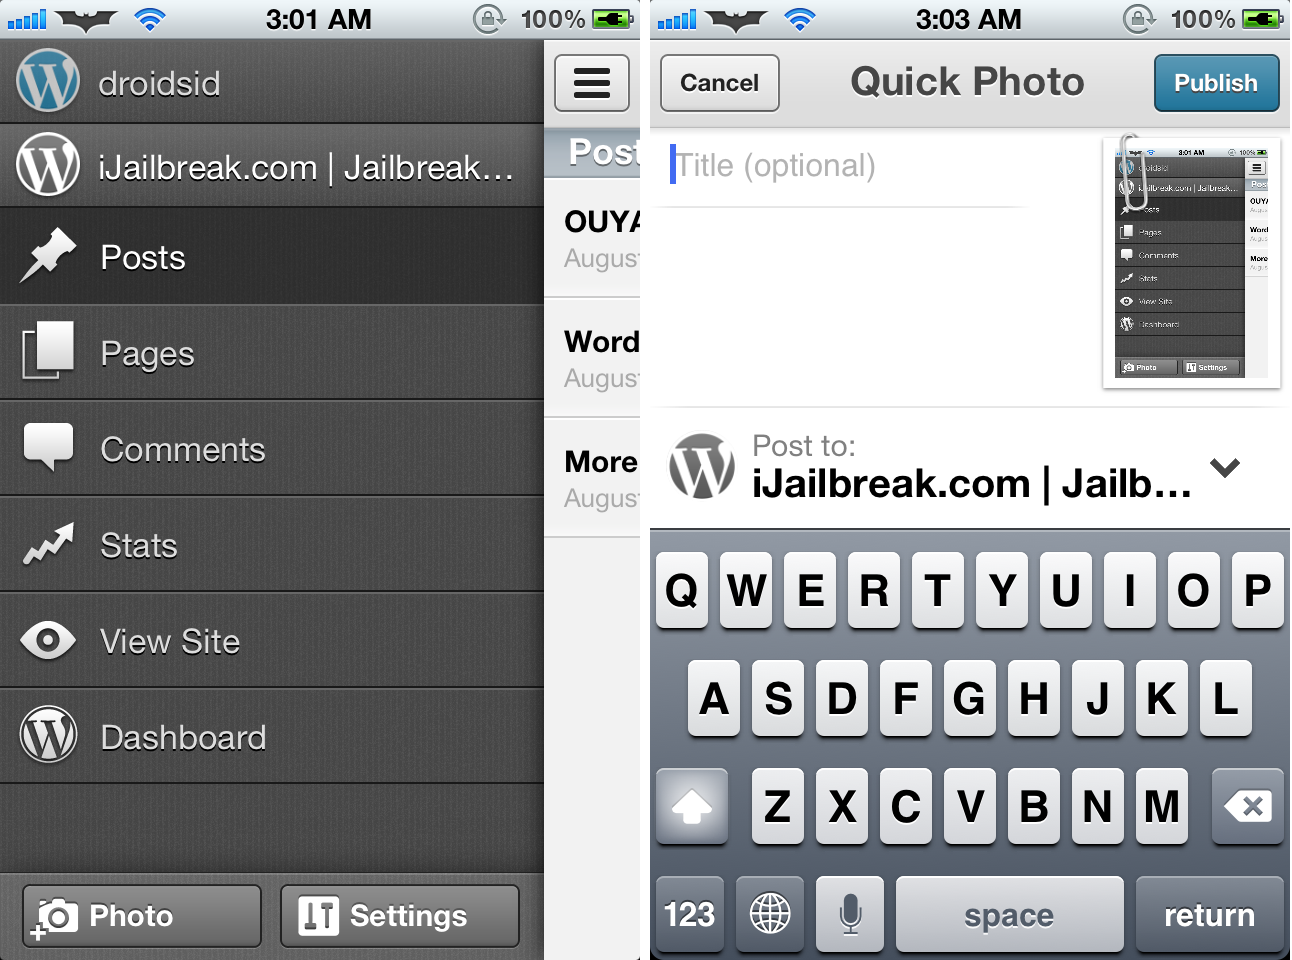 Wordpress For iOS Updated To v3.1 With Major UI Overhaul